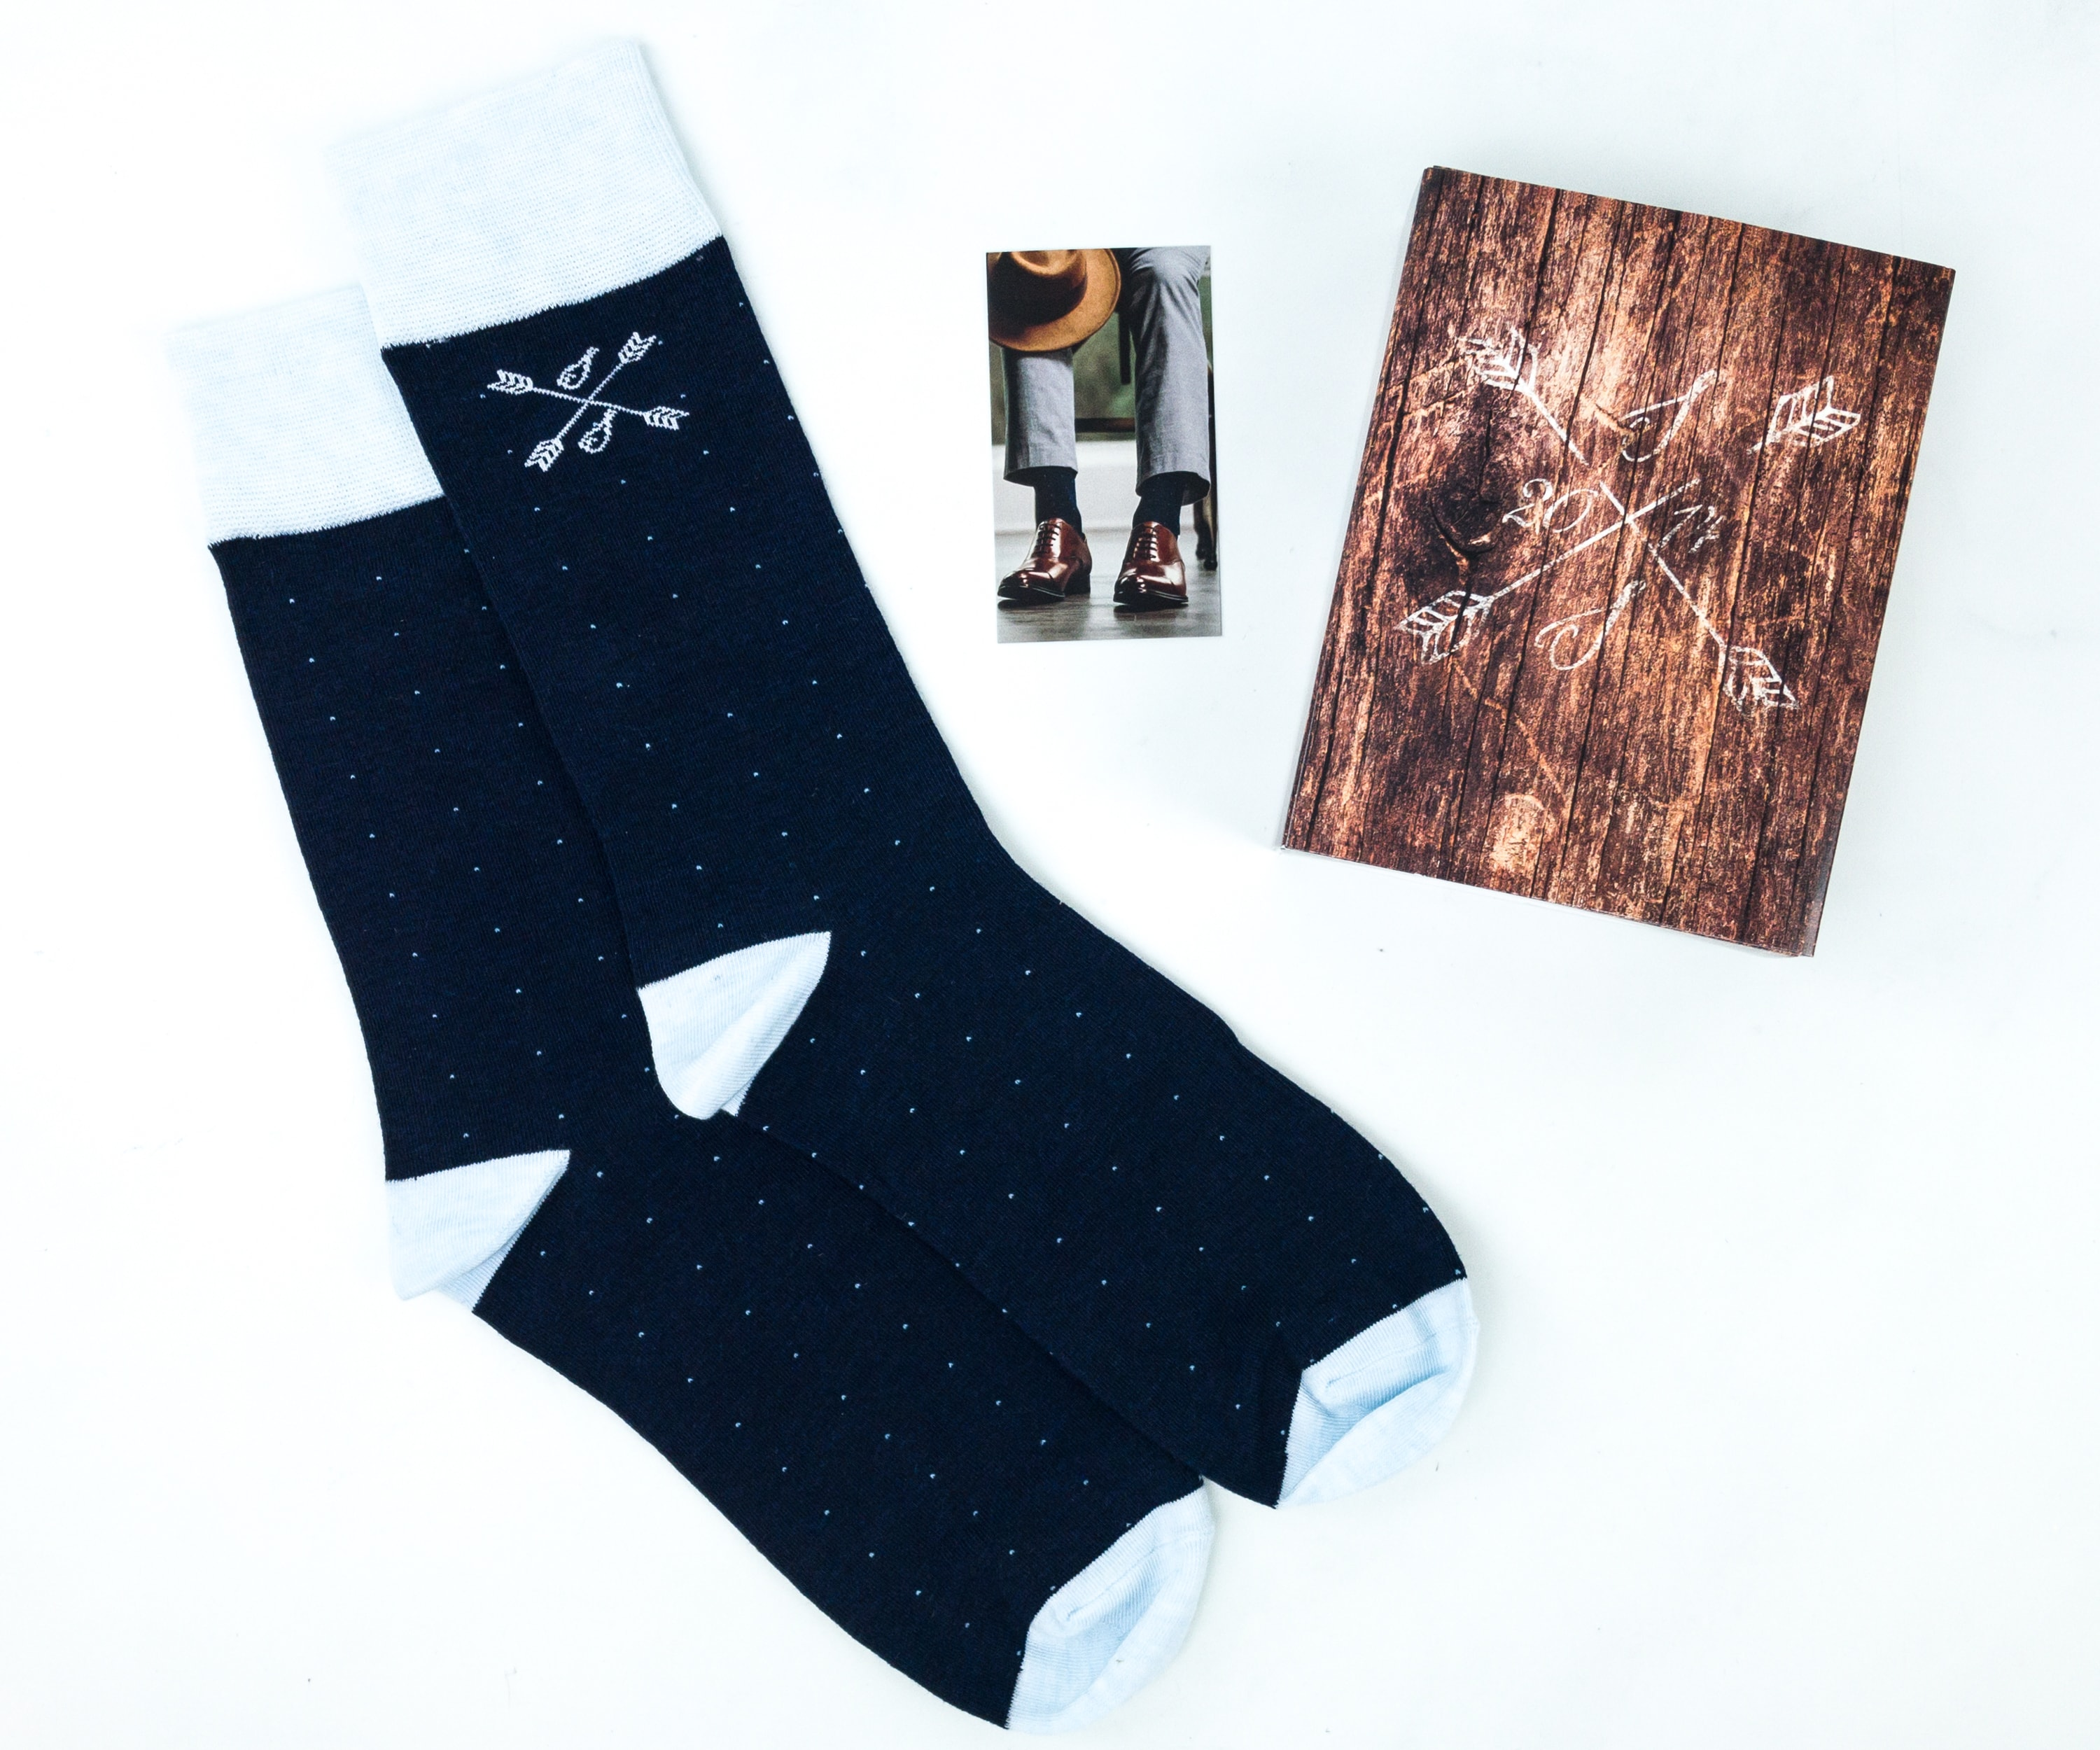 Southern Scholar June 2019 Men's Sock Subscription Box Review & Coupon